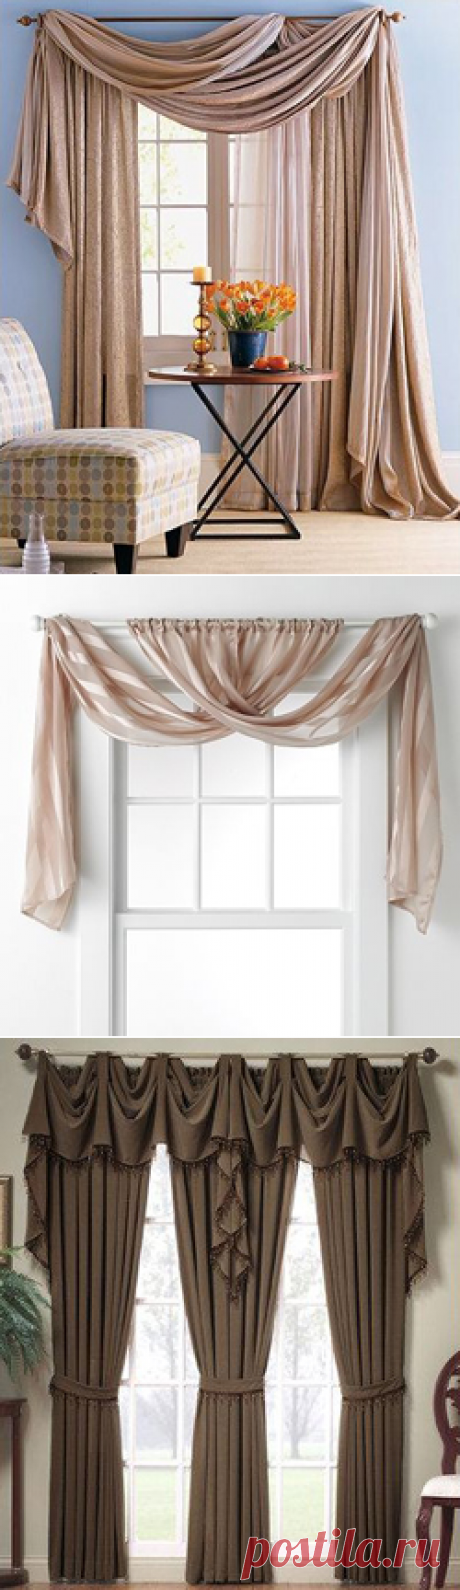 As it is beautiful to hang up curtains: 50 photos interior of curtains